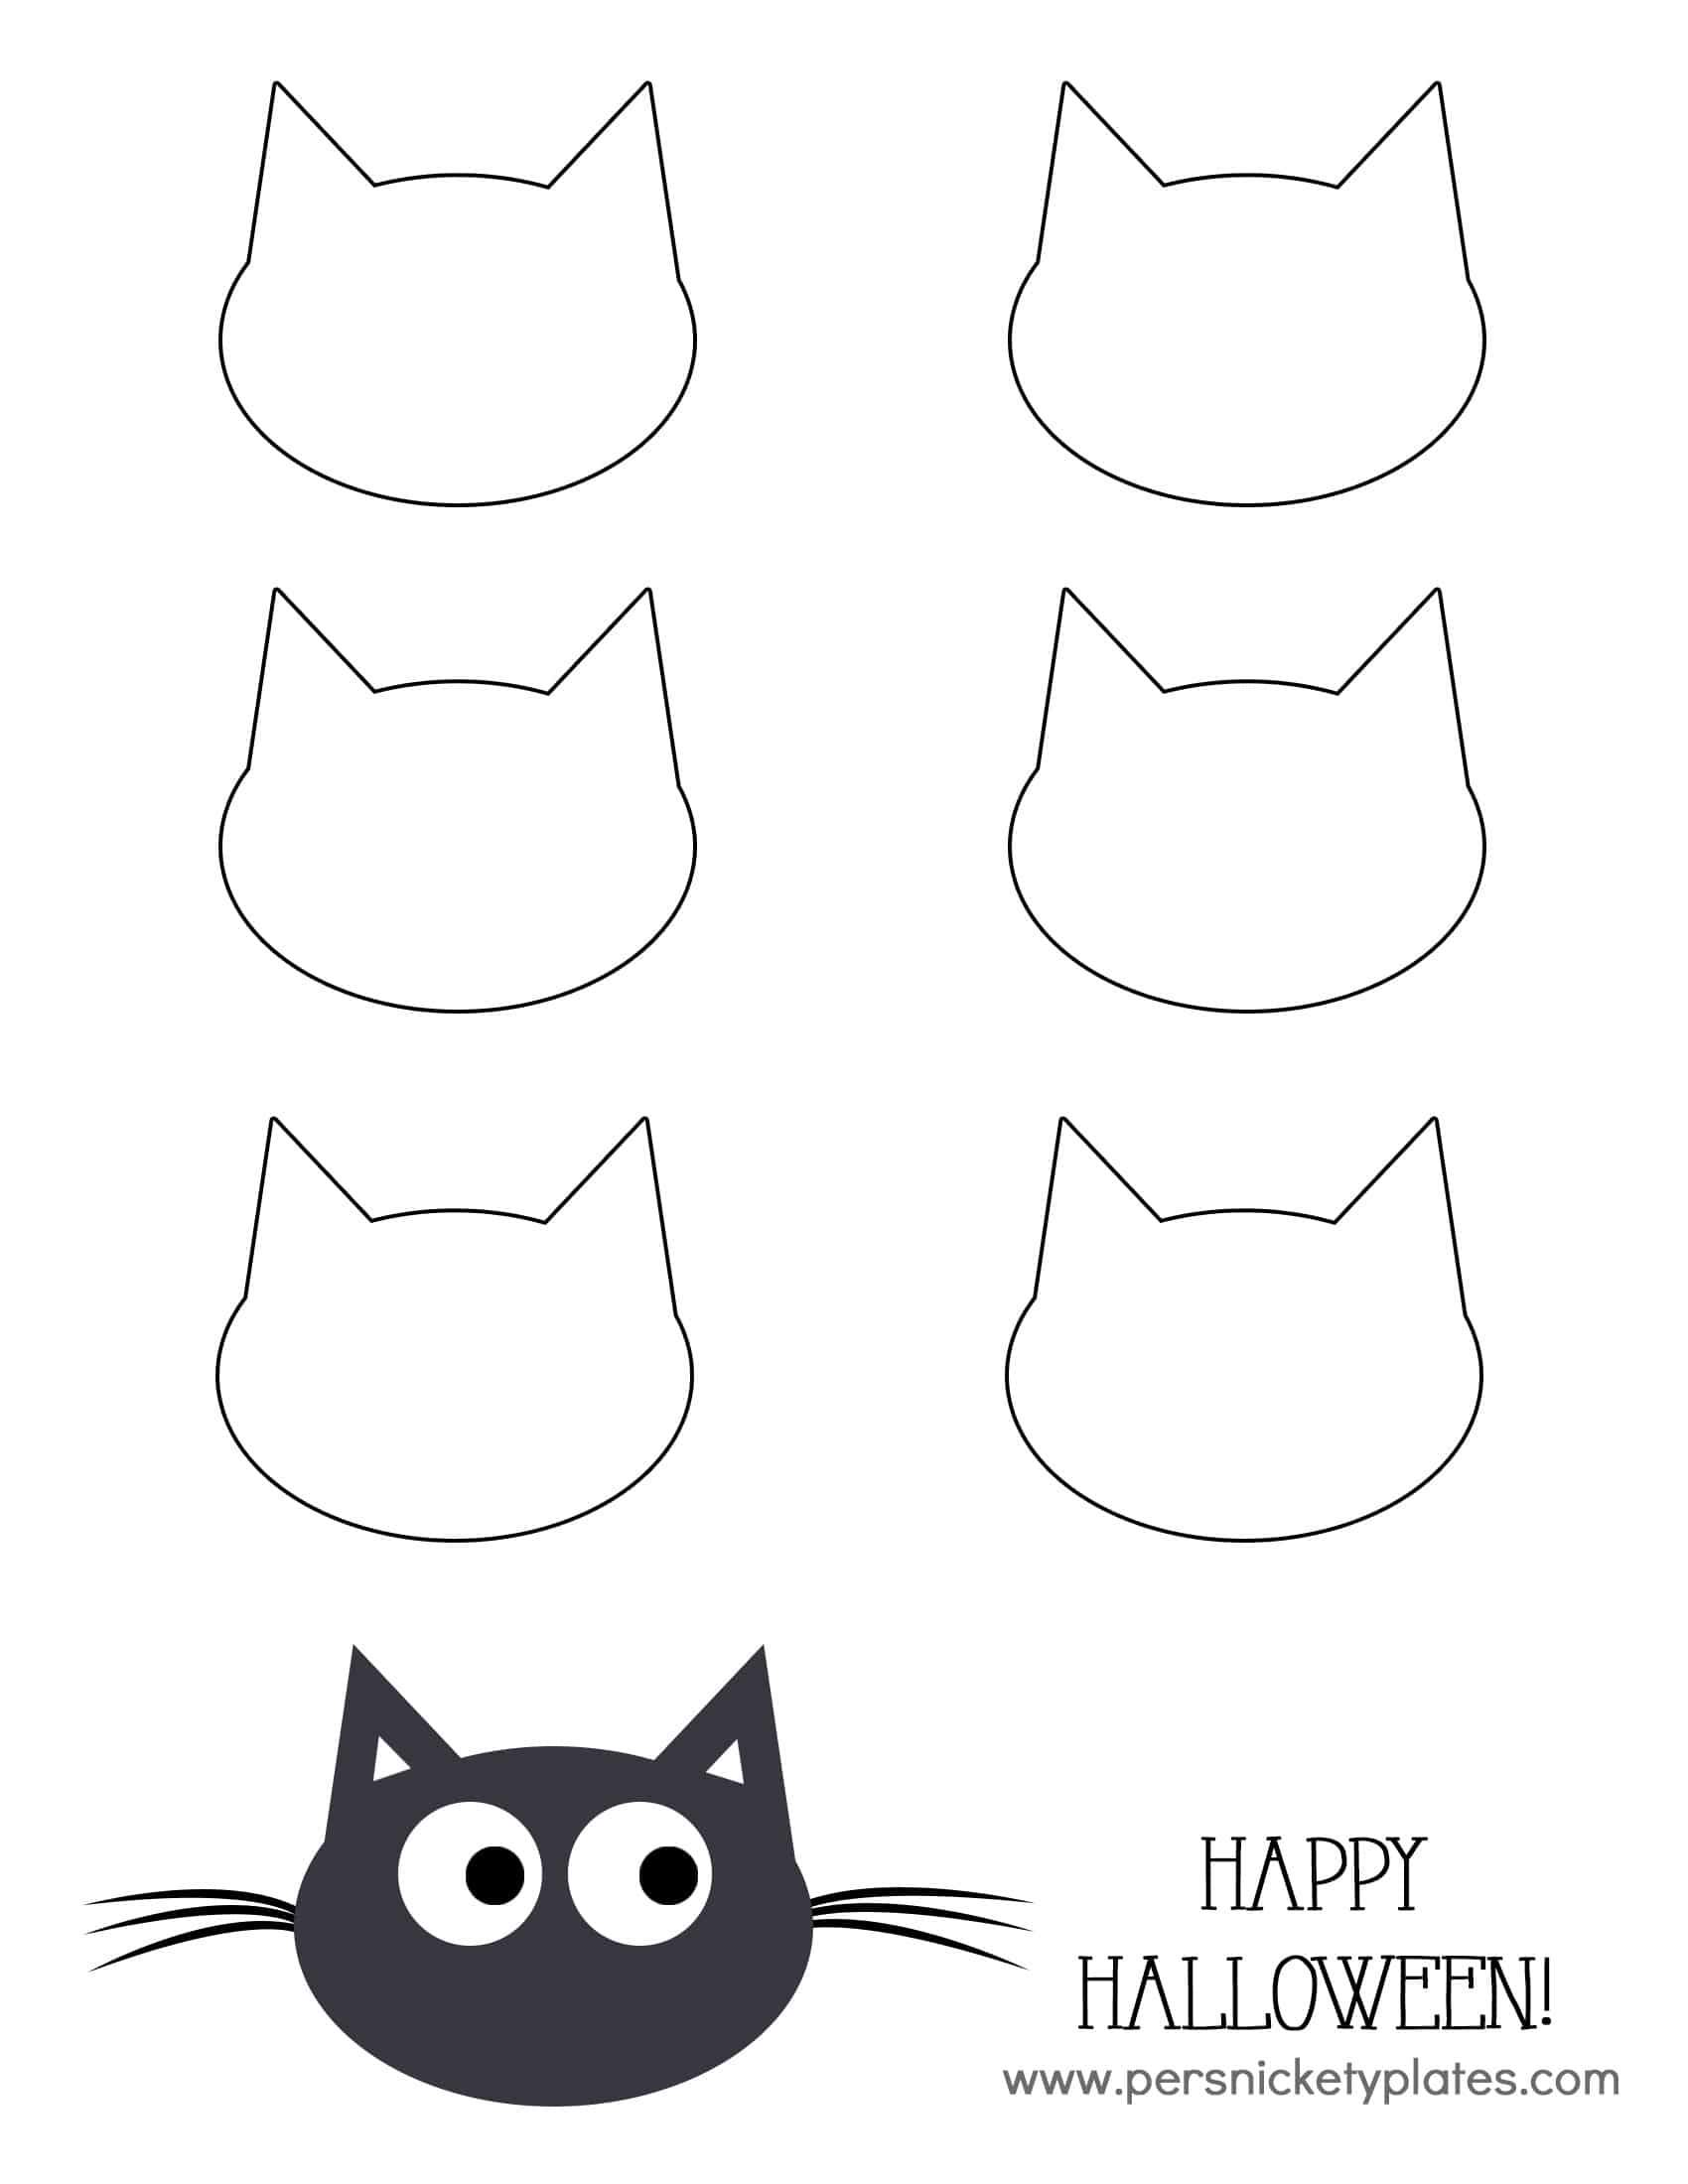 Cat Head Template Black cat pudding cups » persnickety plates